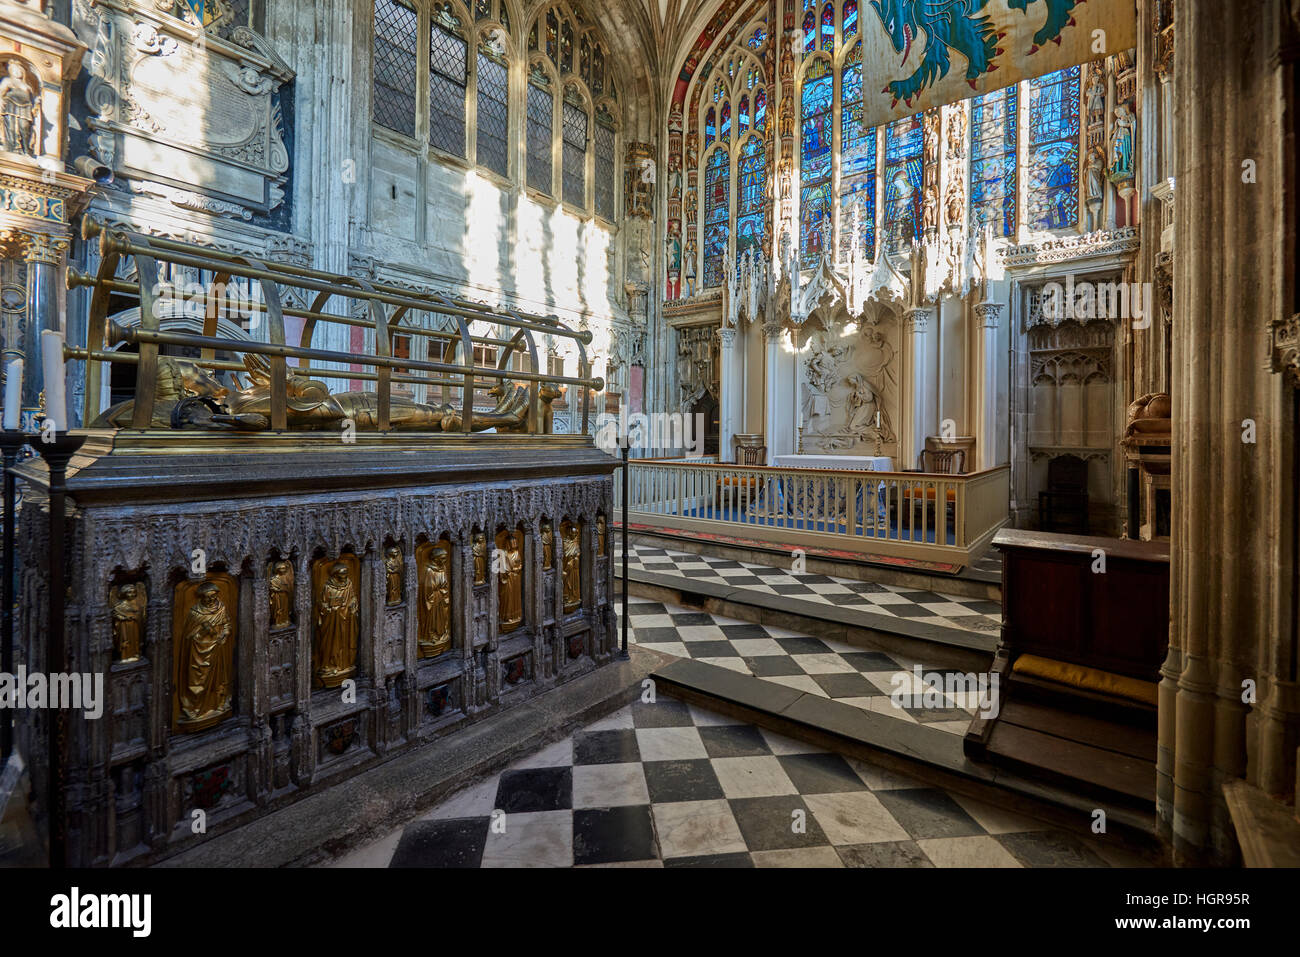 The Collegiate Church of St Mary is a Church of England parish church in the town of Warwick, England - Stock Image